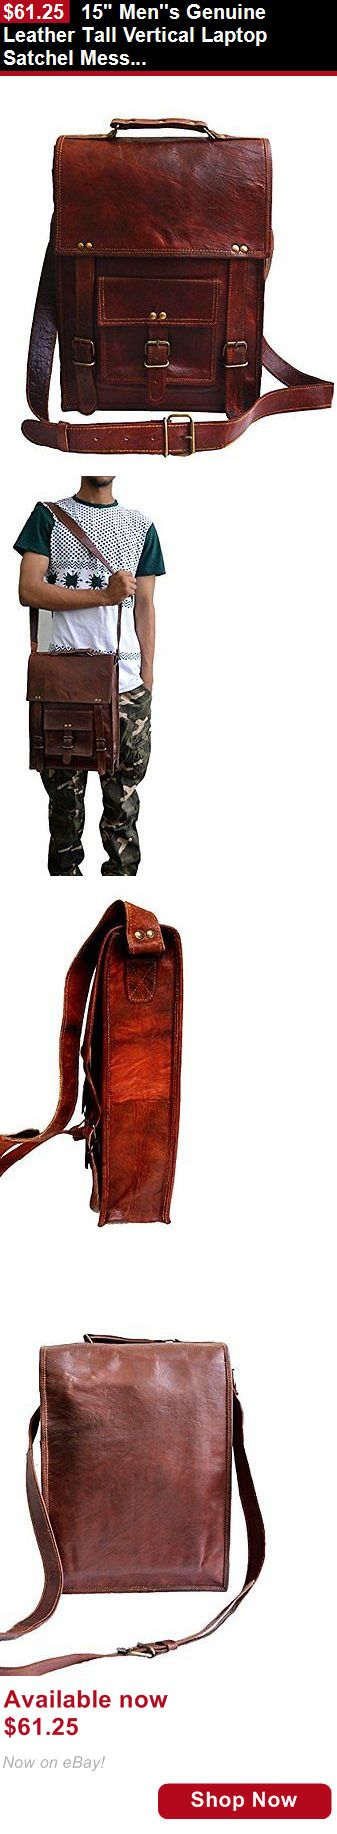 Men accessories: 15 Mens Genuine Leather Tall Vertical Laptop Satchel Messenger Bag Briefcase BUY IT NOW ONLY: $61.25